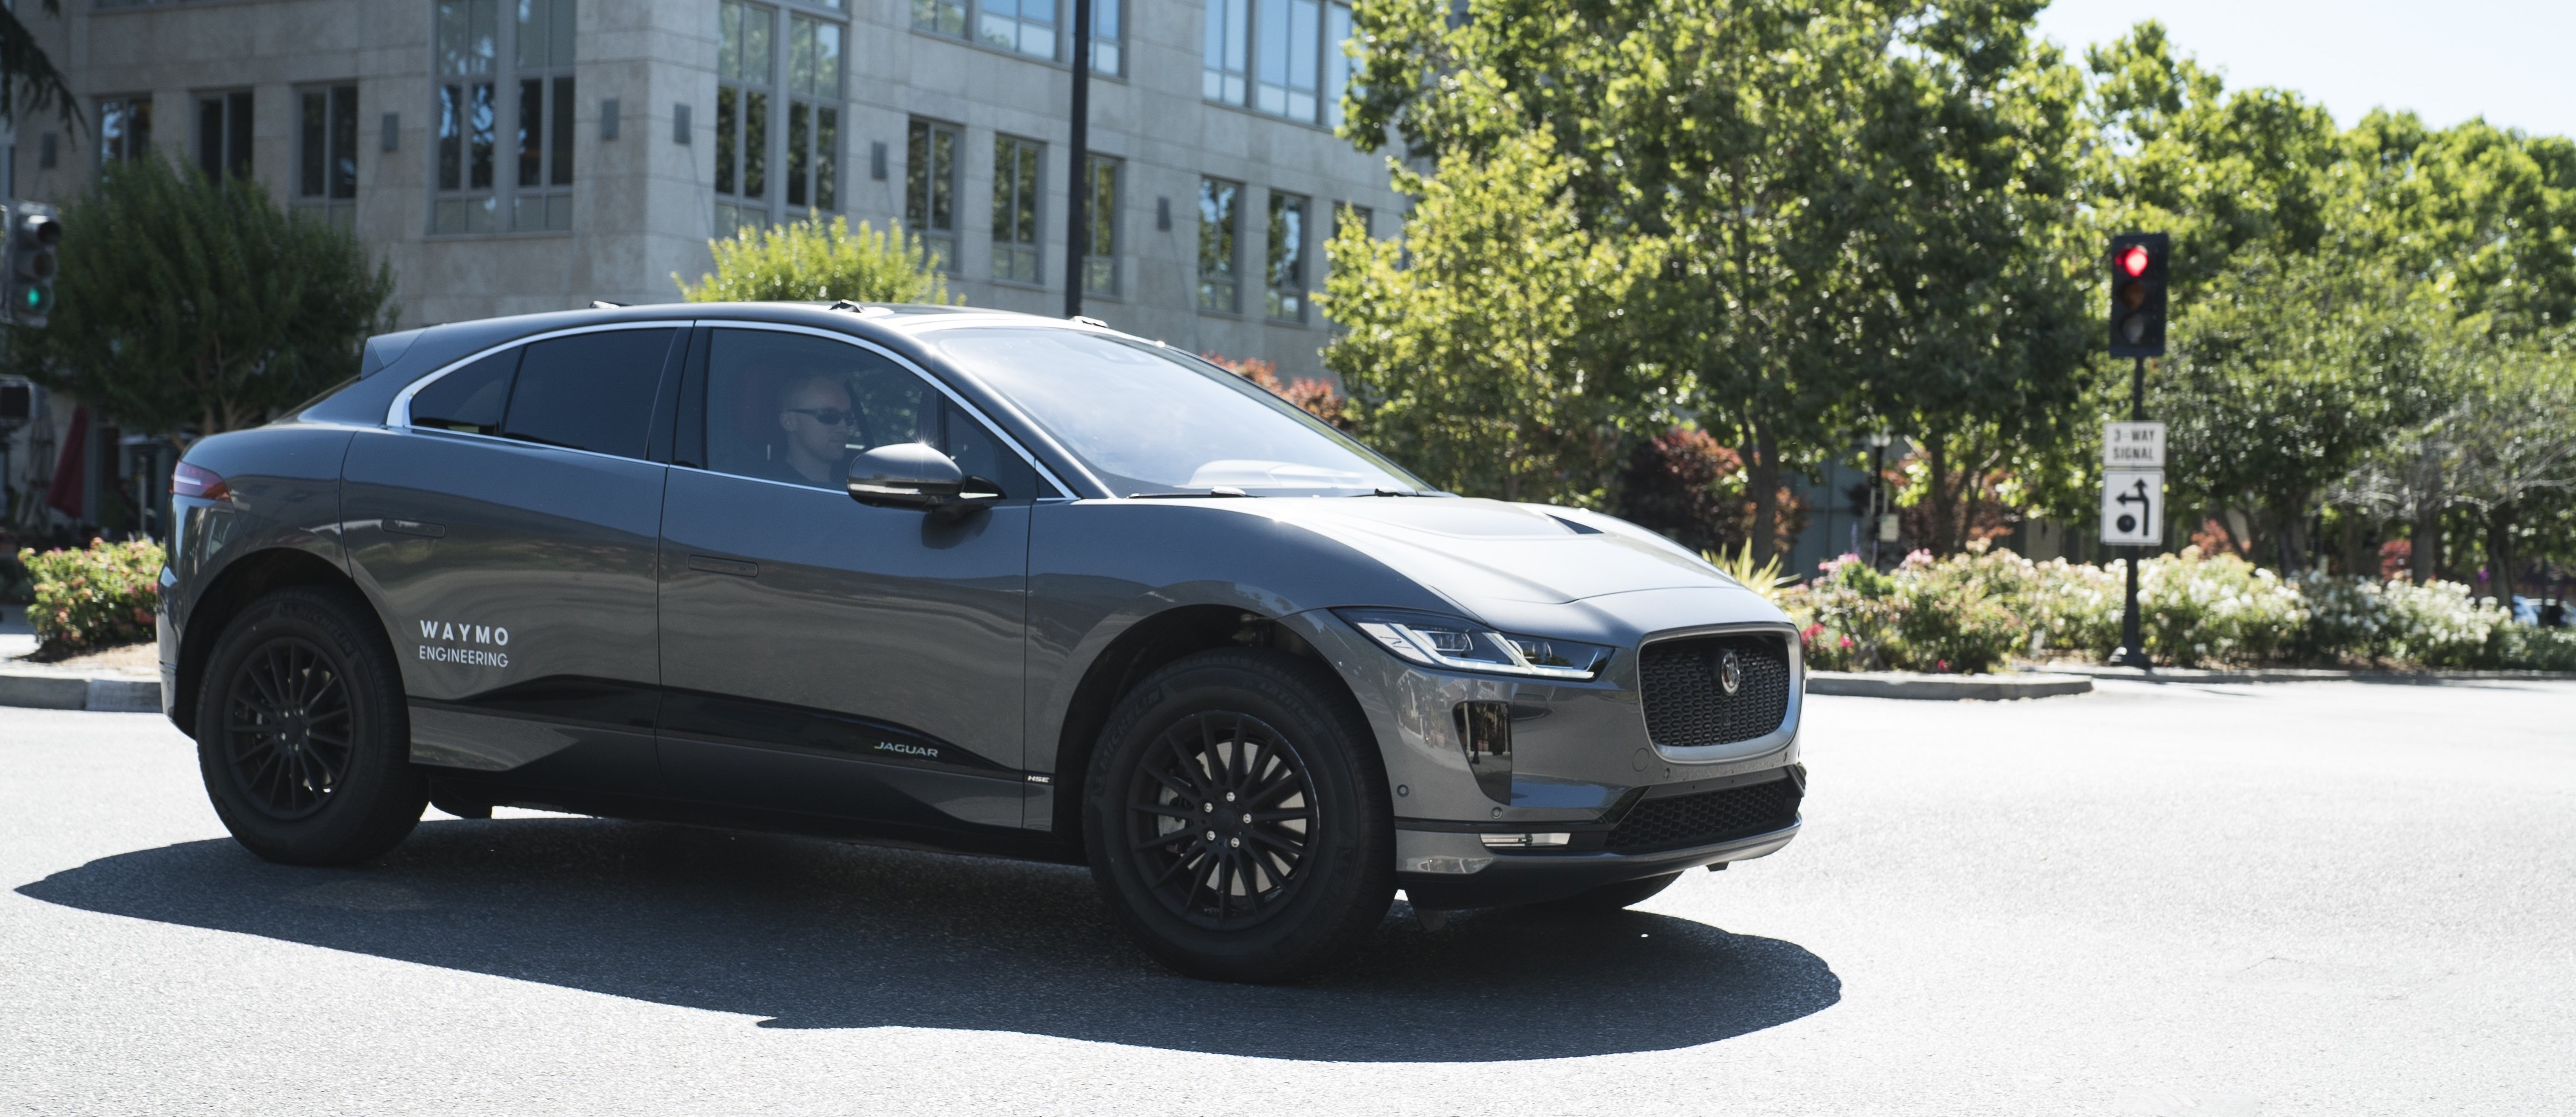 Jaguar Delivers First I-Pace Vehicles In U.S. To Waymo